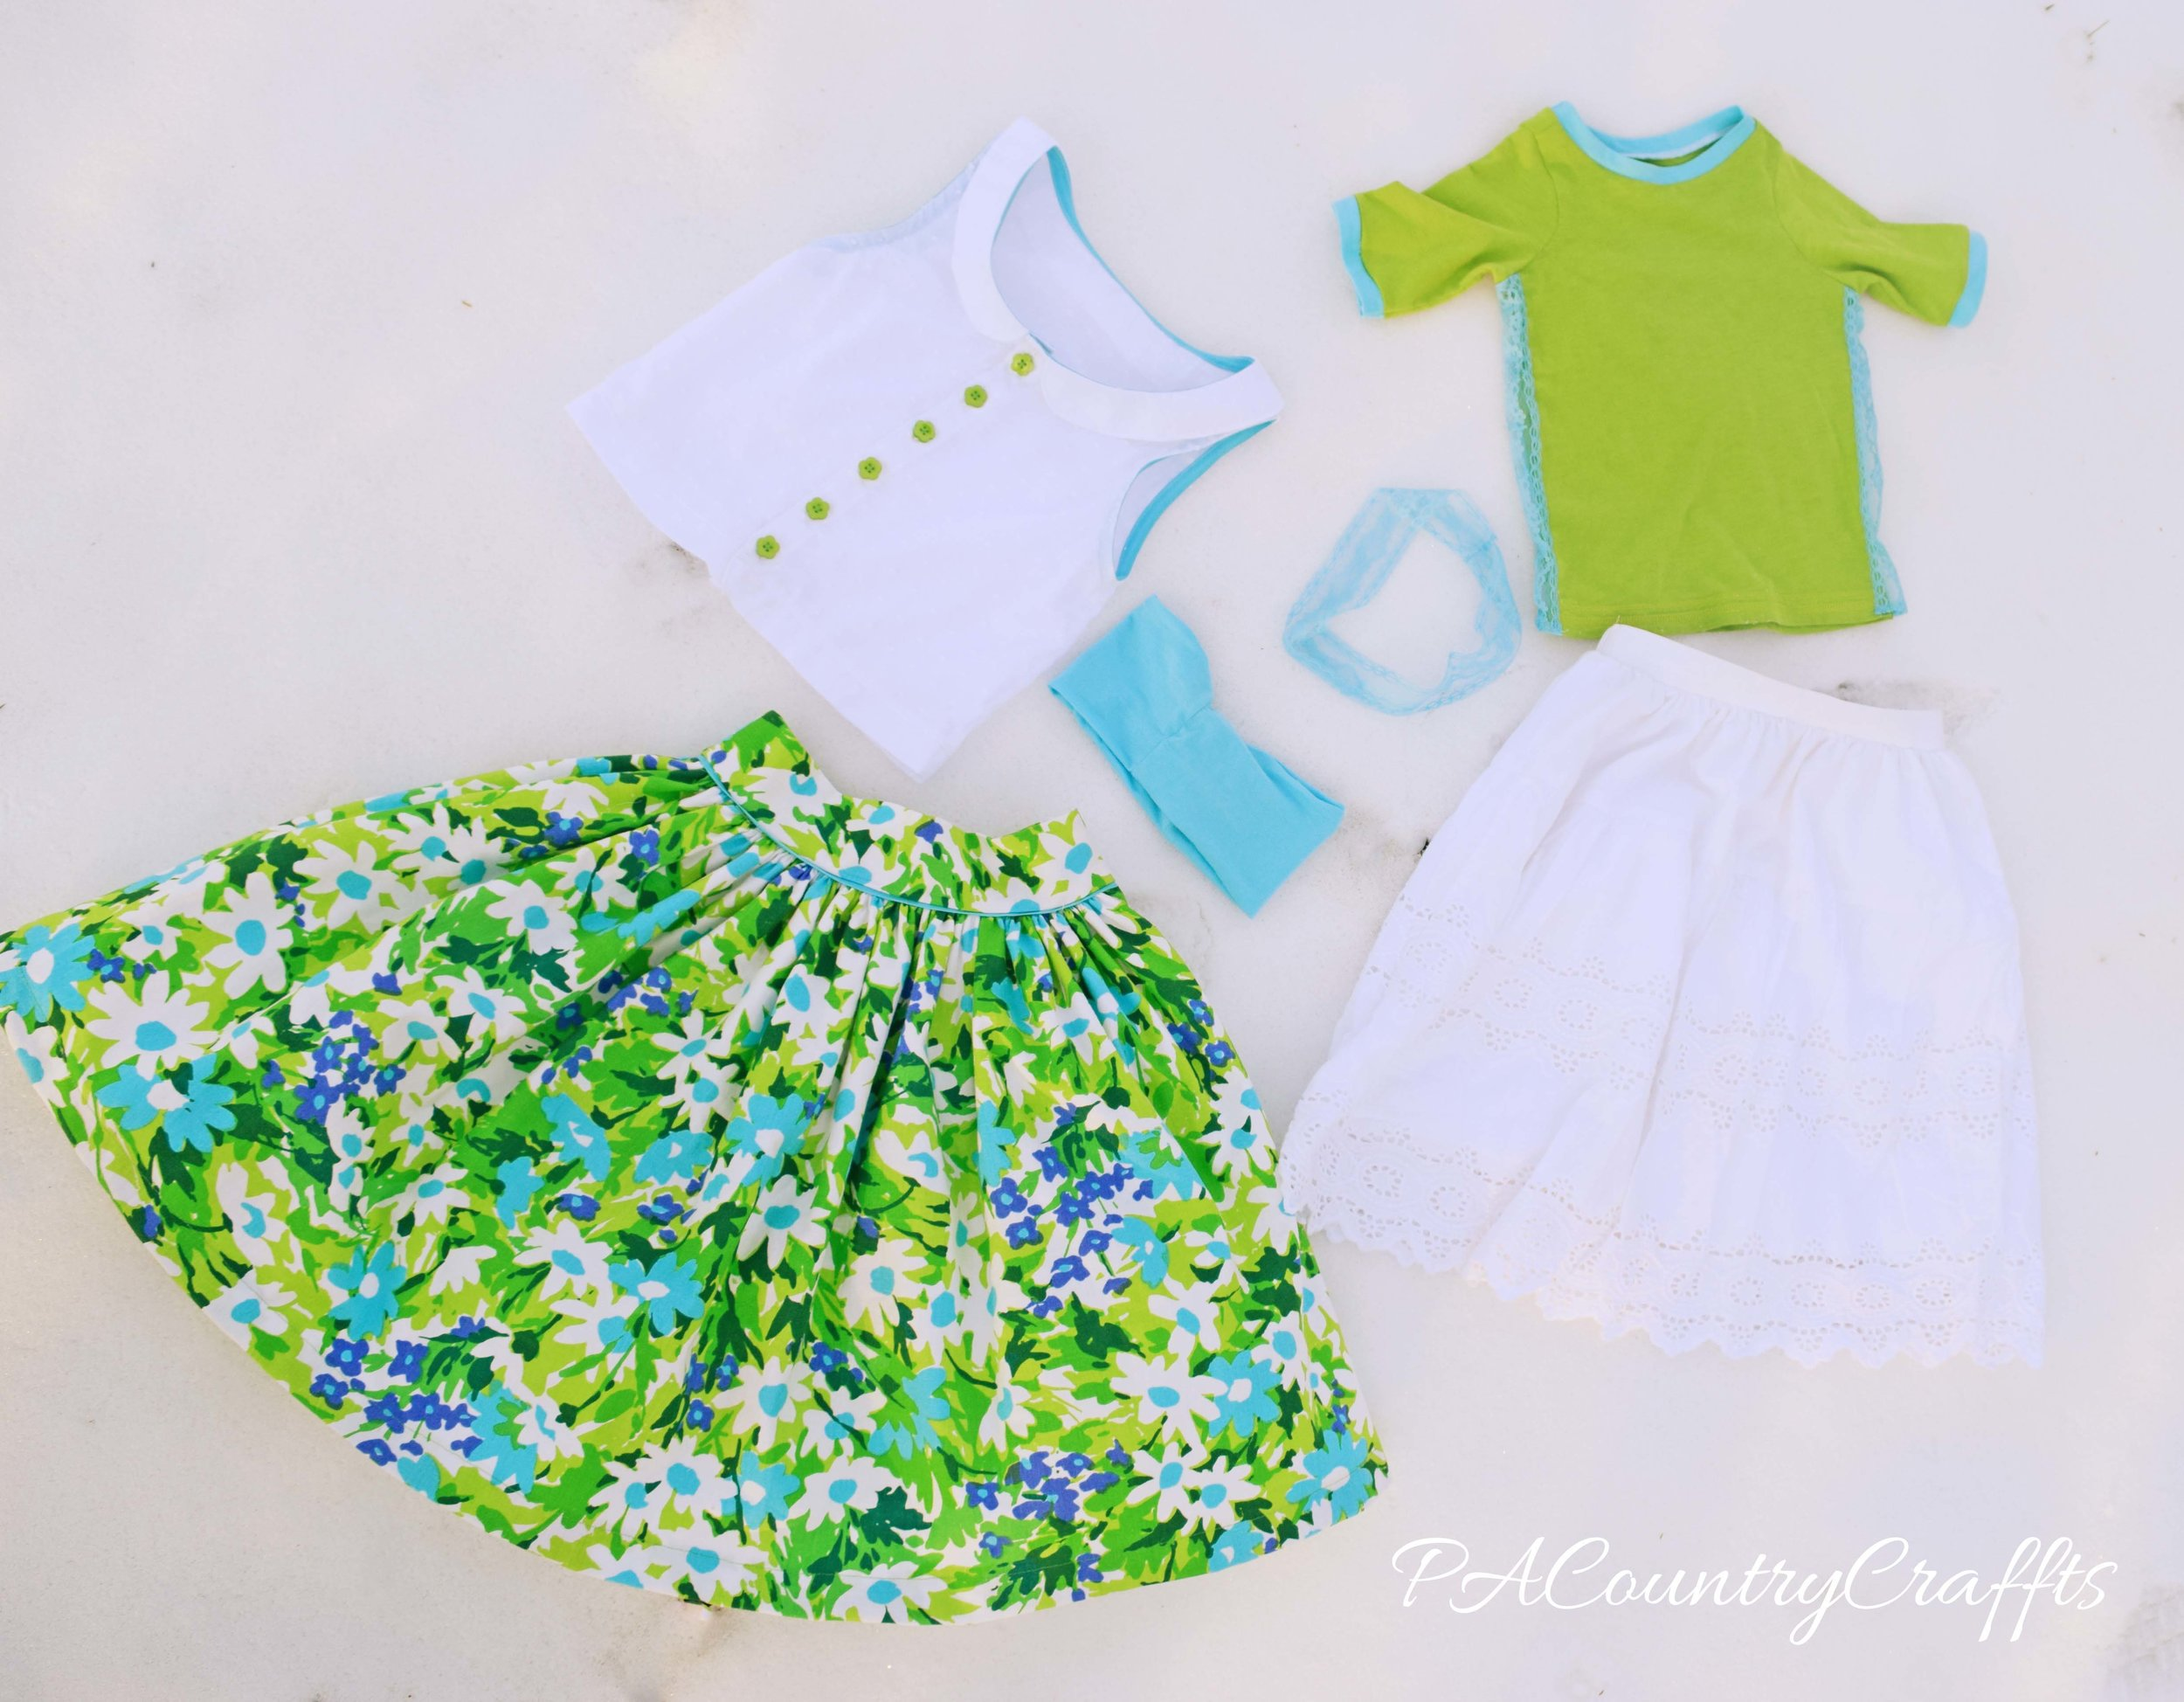 greenery project run and play week 2 outfits